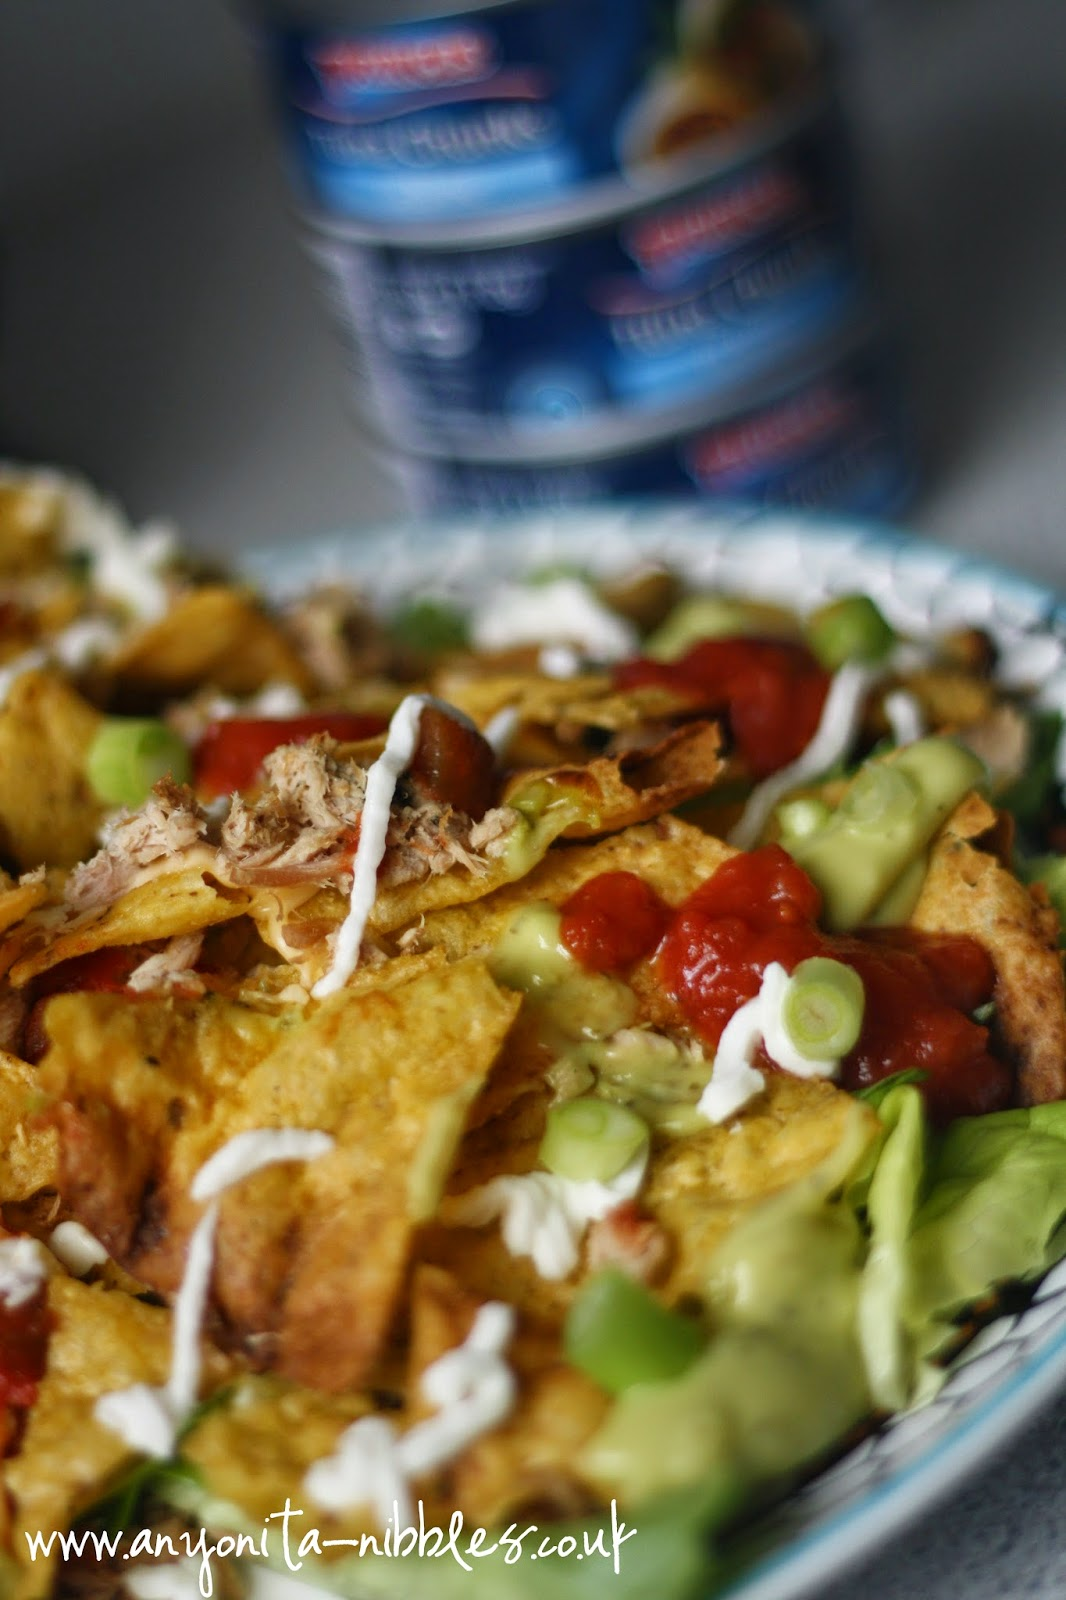 Tuna nacho chips from Princes and Anyonita-nibbles.co.uk